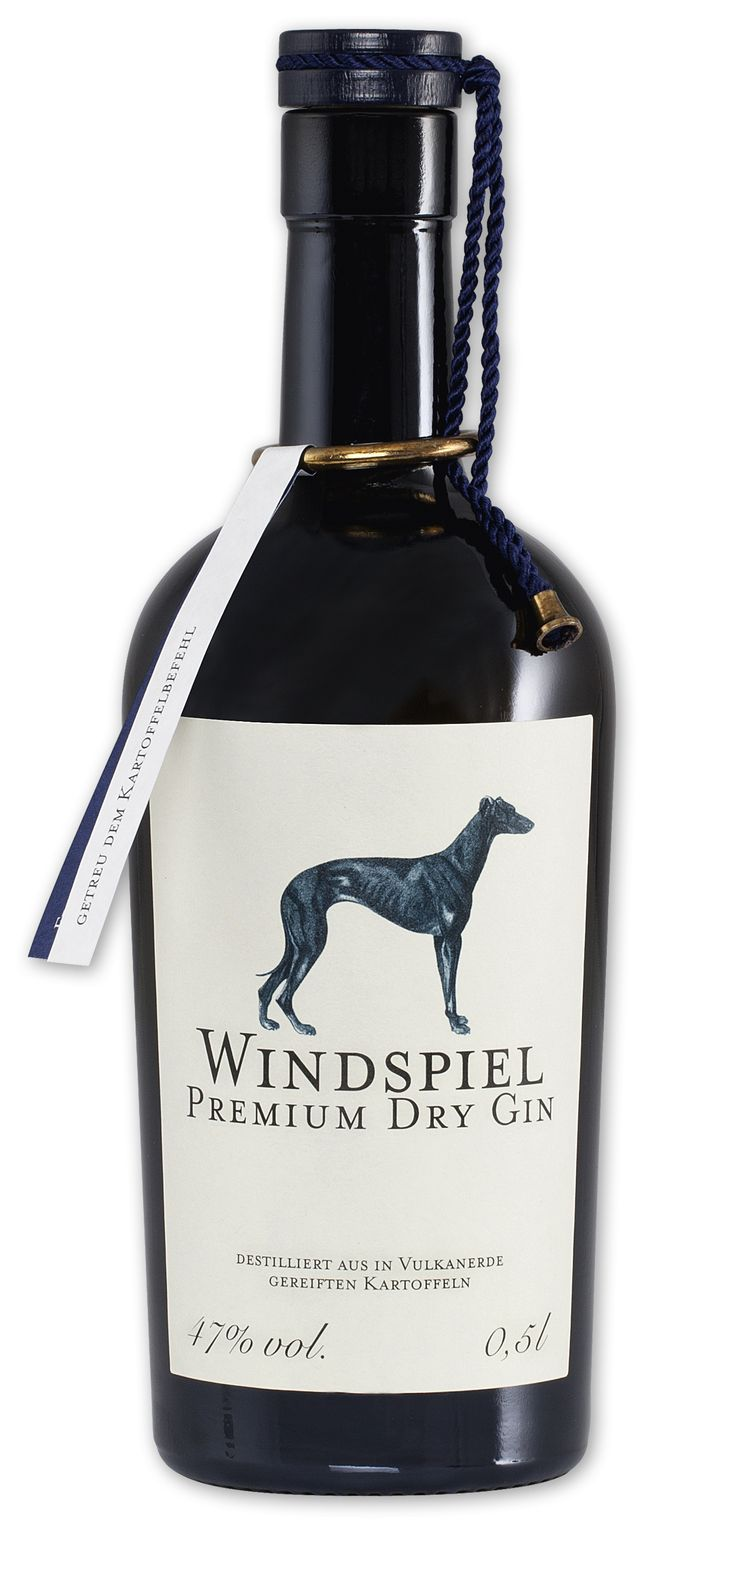 Windspiel Premium Dry Gin | #packaging #bottledesign #gin